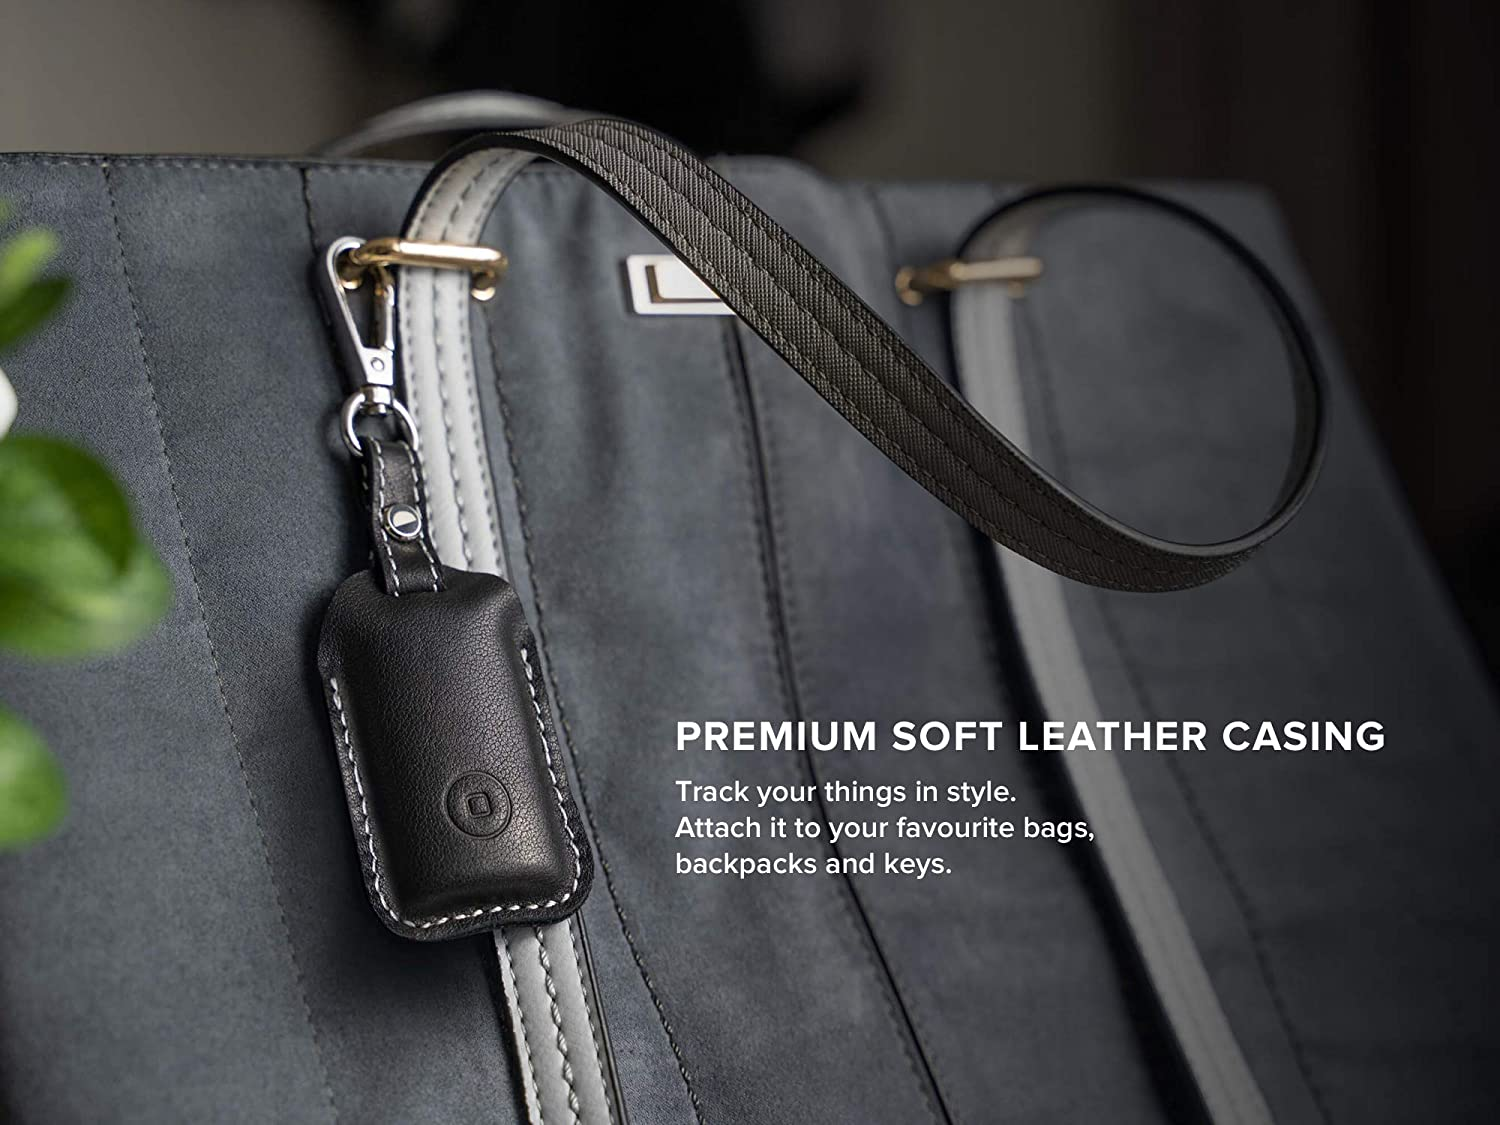 Premium Leather Fob x 2 to Find Lost Car or House Keys or Phone Free Companion App Water Resistant Keychain Tracking Device Safedome Smart Key Locator with Bluetooth Tracker